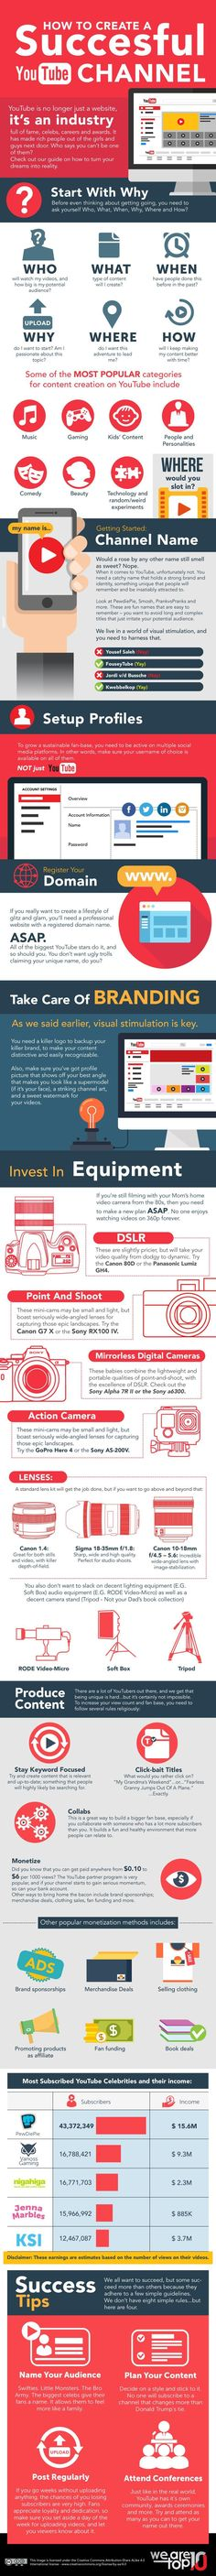 How To Start A Successful YouTube Channel [Infographic] #searchengineoptimizationyoutube,